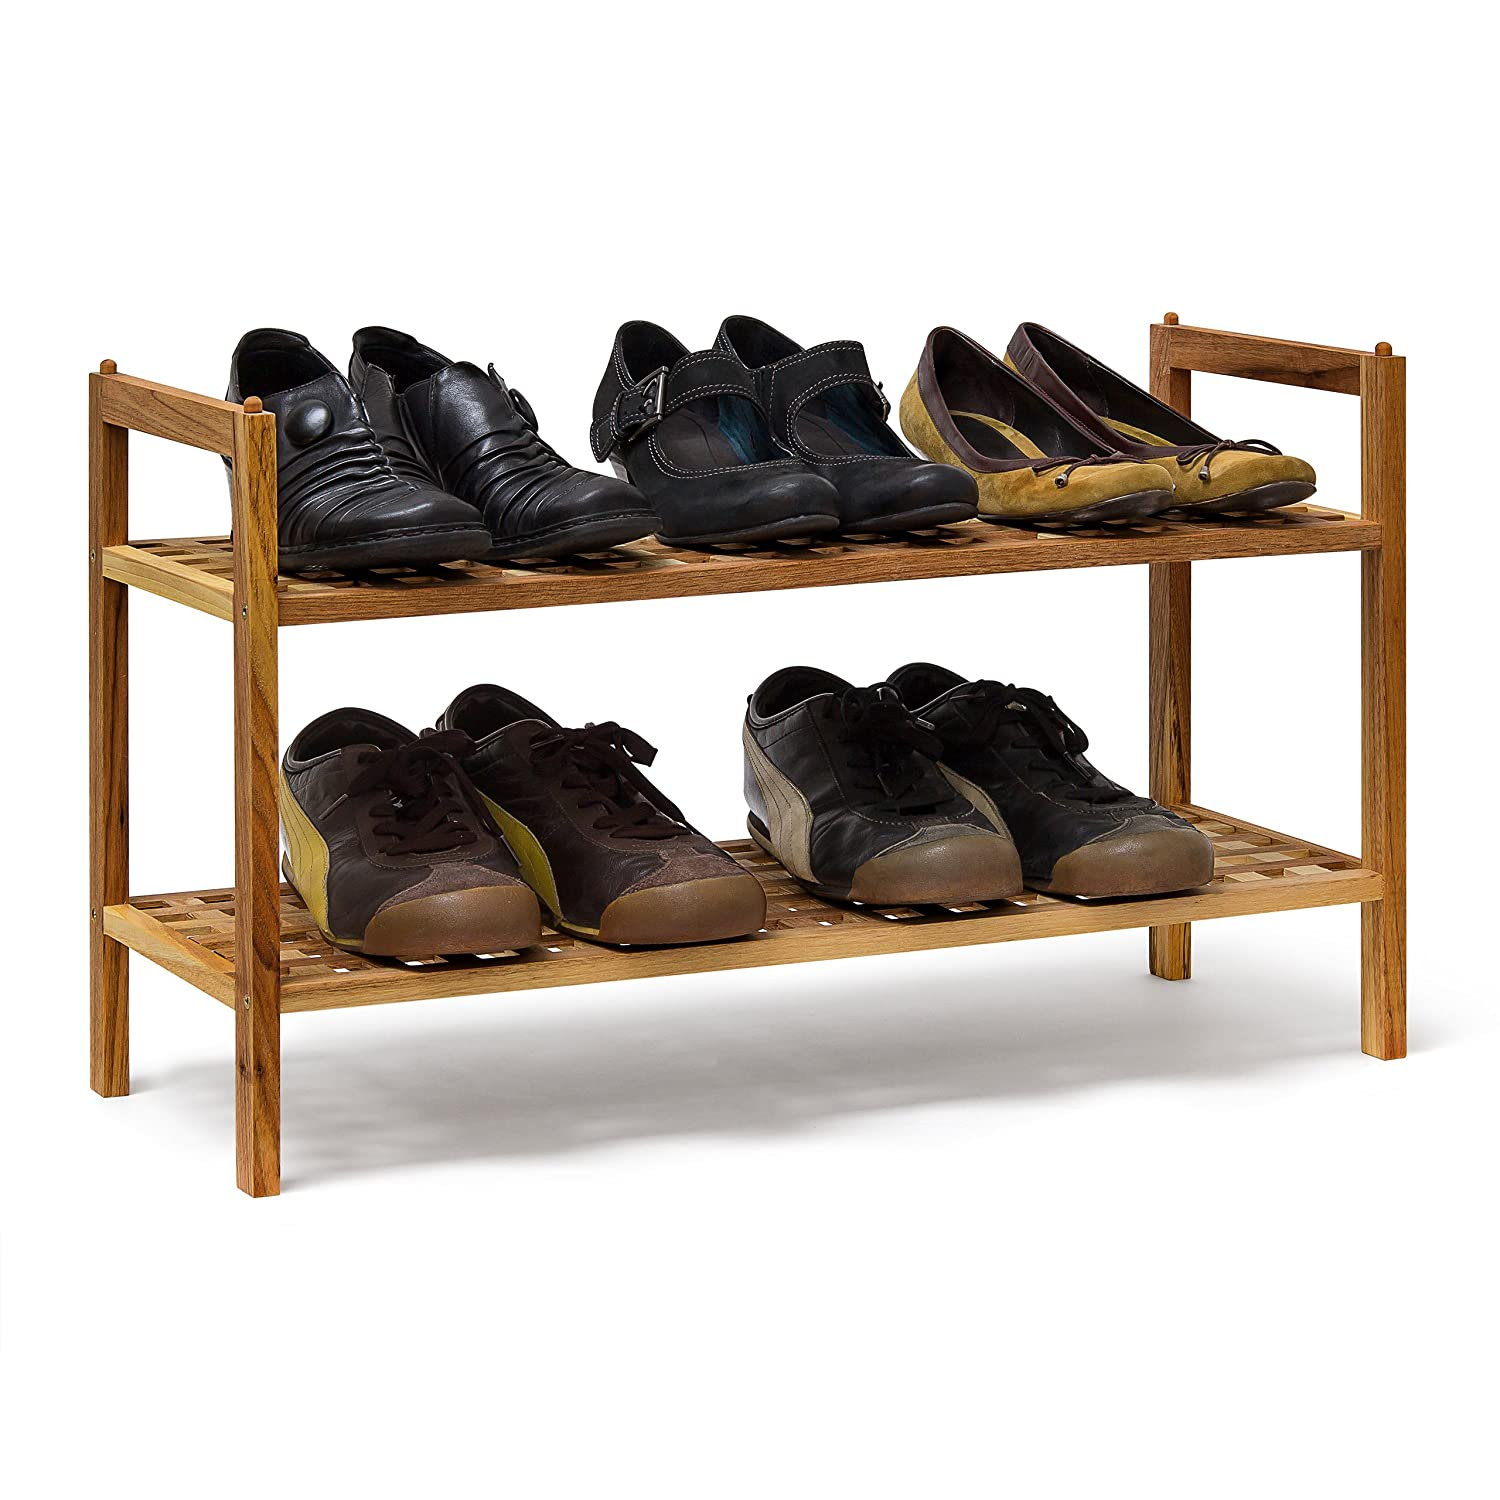 Relaxdays Two-Tier Shoe Rack, Wood, Brown, 40.5 x 69 x 26 cm 10019276